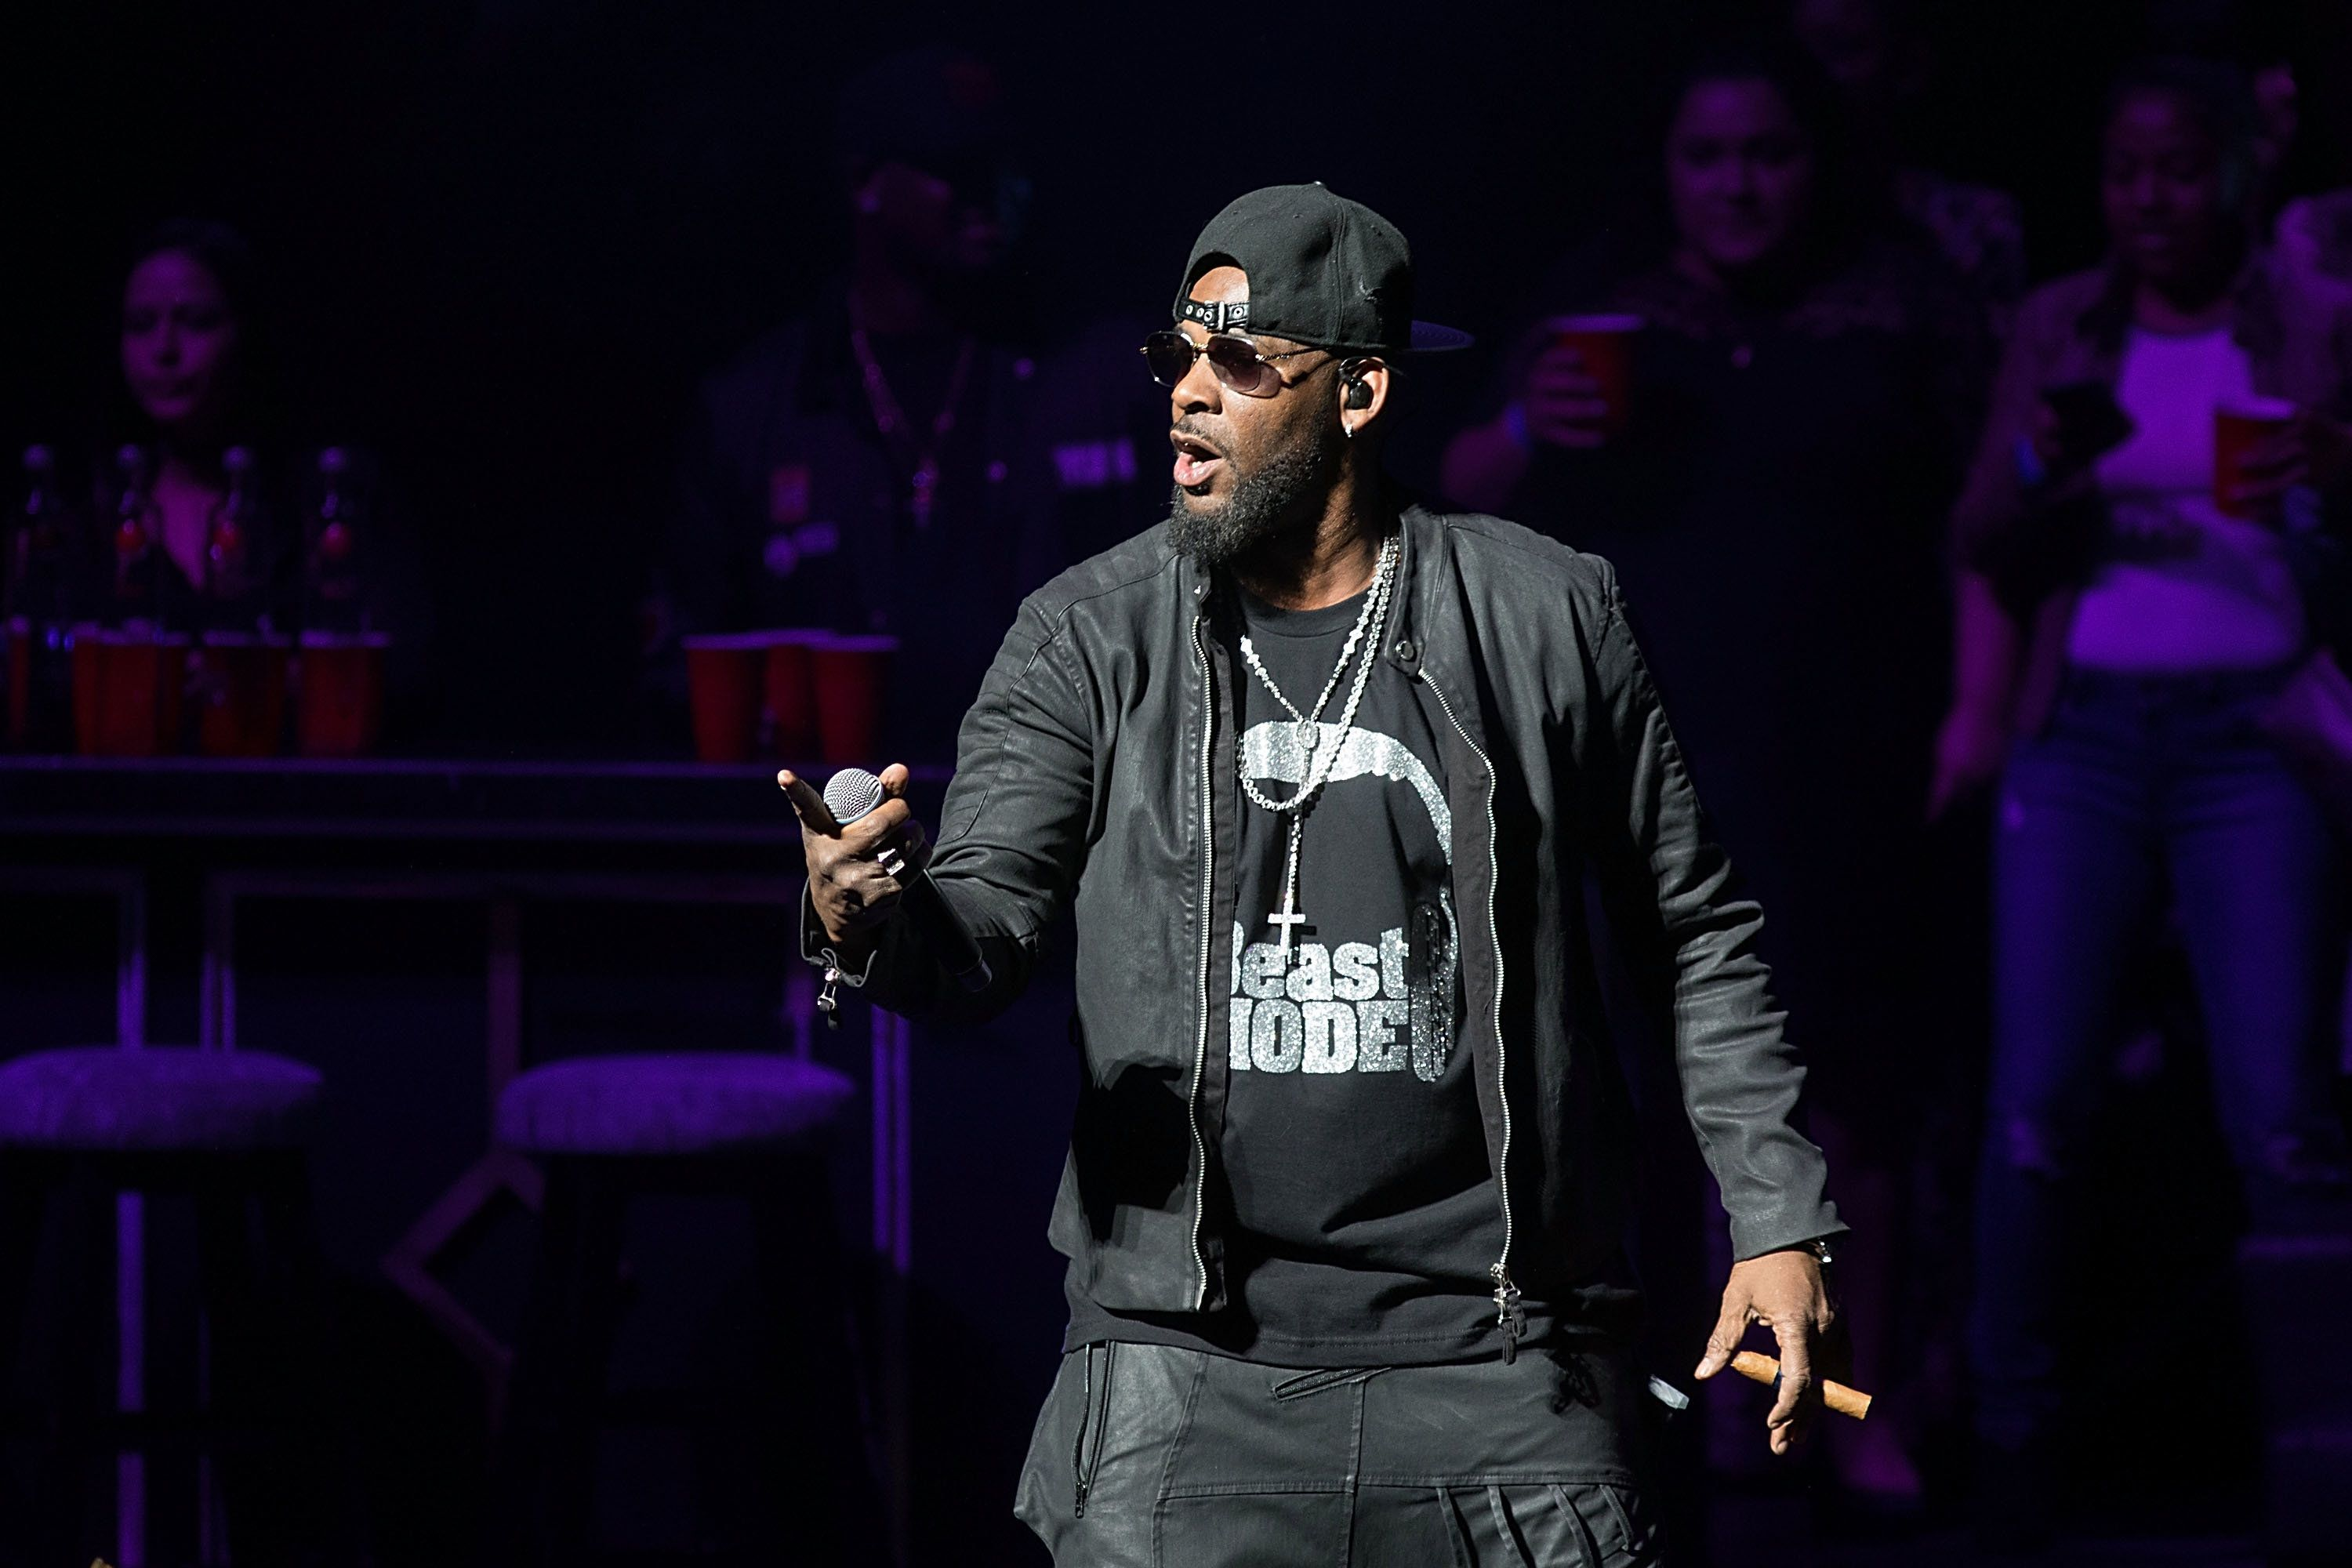 AUSTIN, TX - MARCH 03:  Singer-songwriter R. Kelly performs in concert at Bass Concert Hall on March 3, 2017 in Austin, Texas.  (Photo by Rick Kern/WireImage)